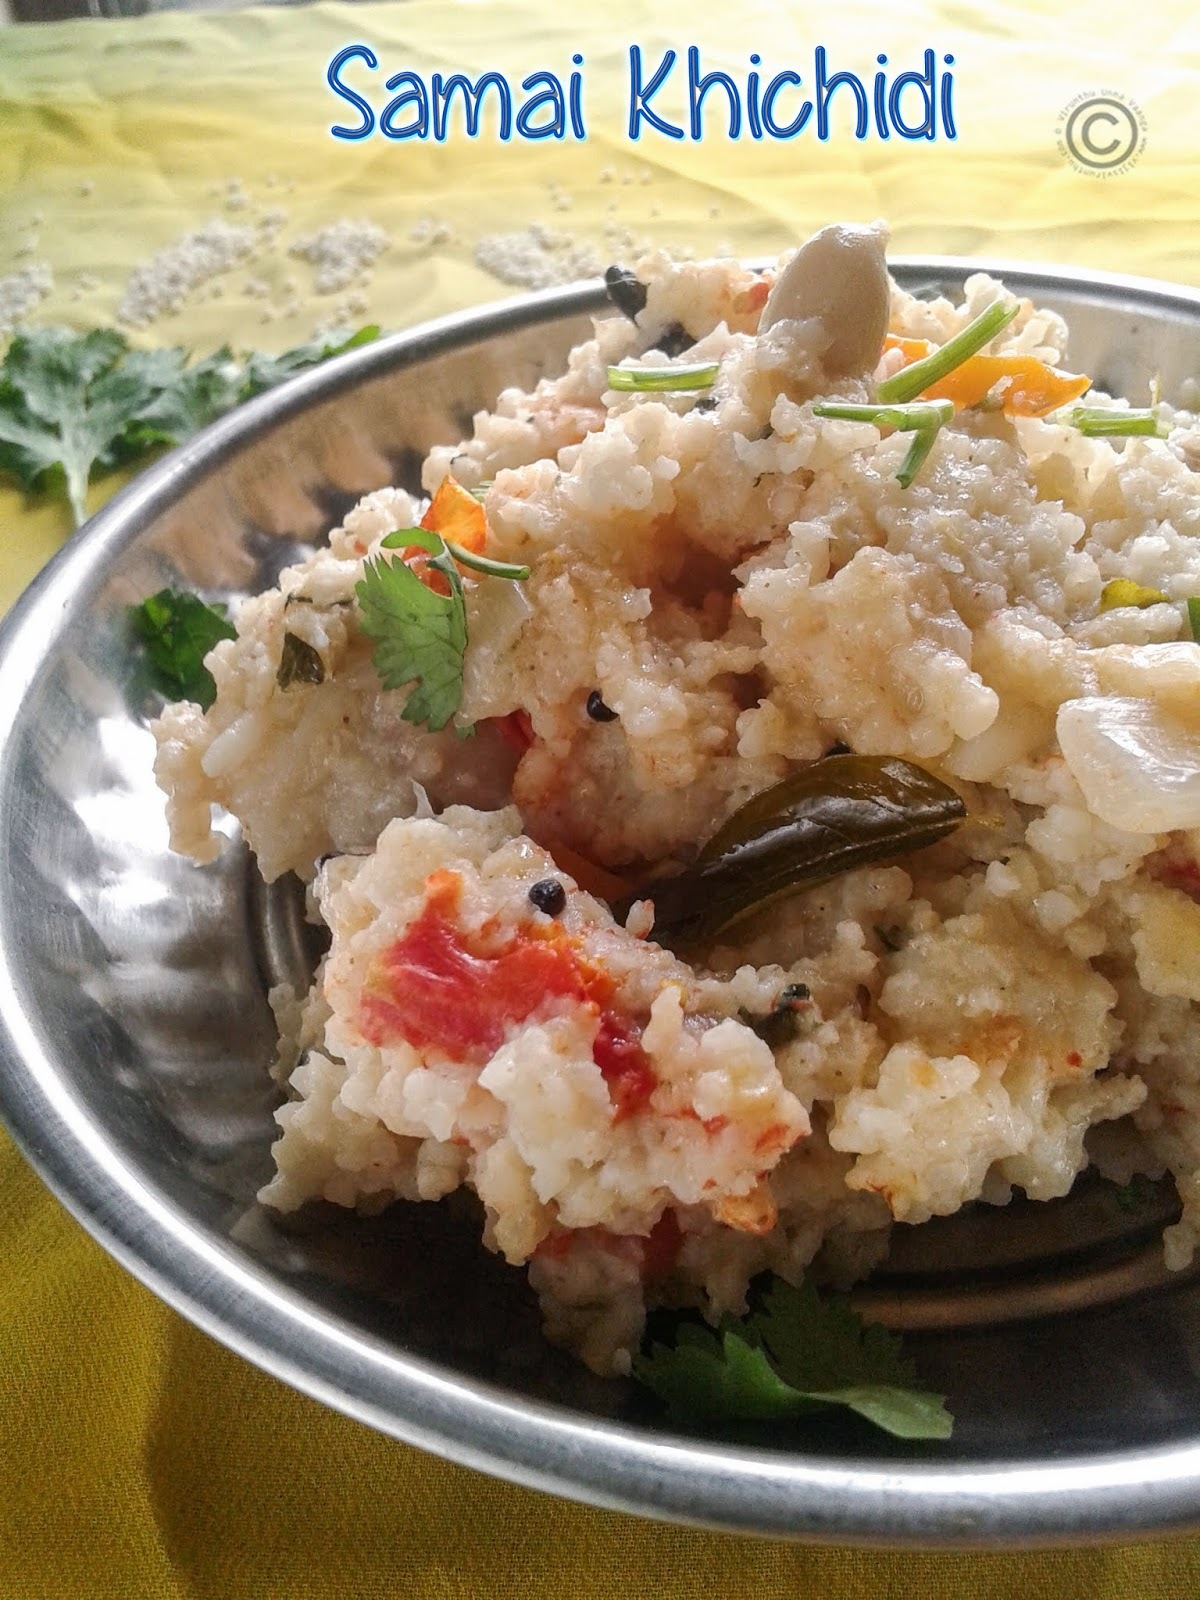 SAMAI KHICHIDI I LITTLE MILLET VEGETABLE UPMA I MILLET RECIPES I HEALTHY BREAKFAST RECIPES